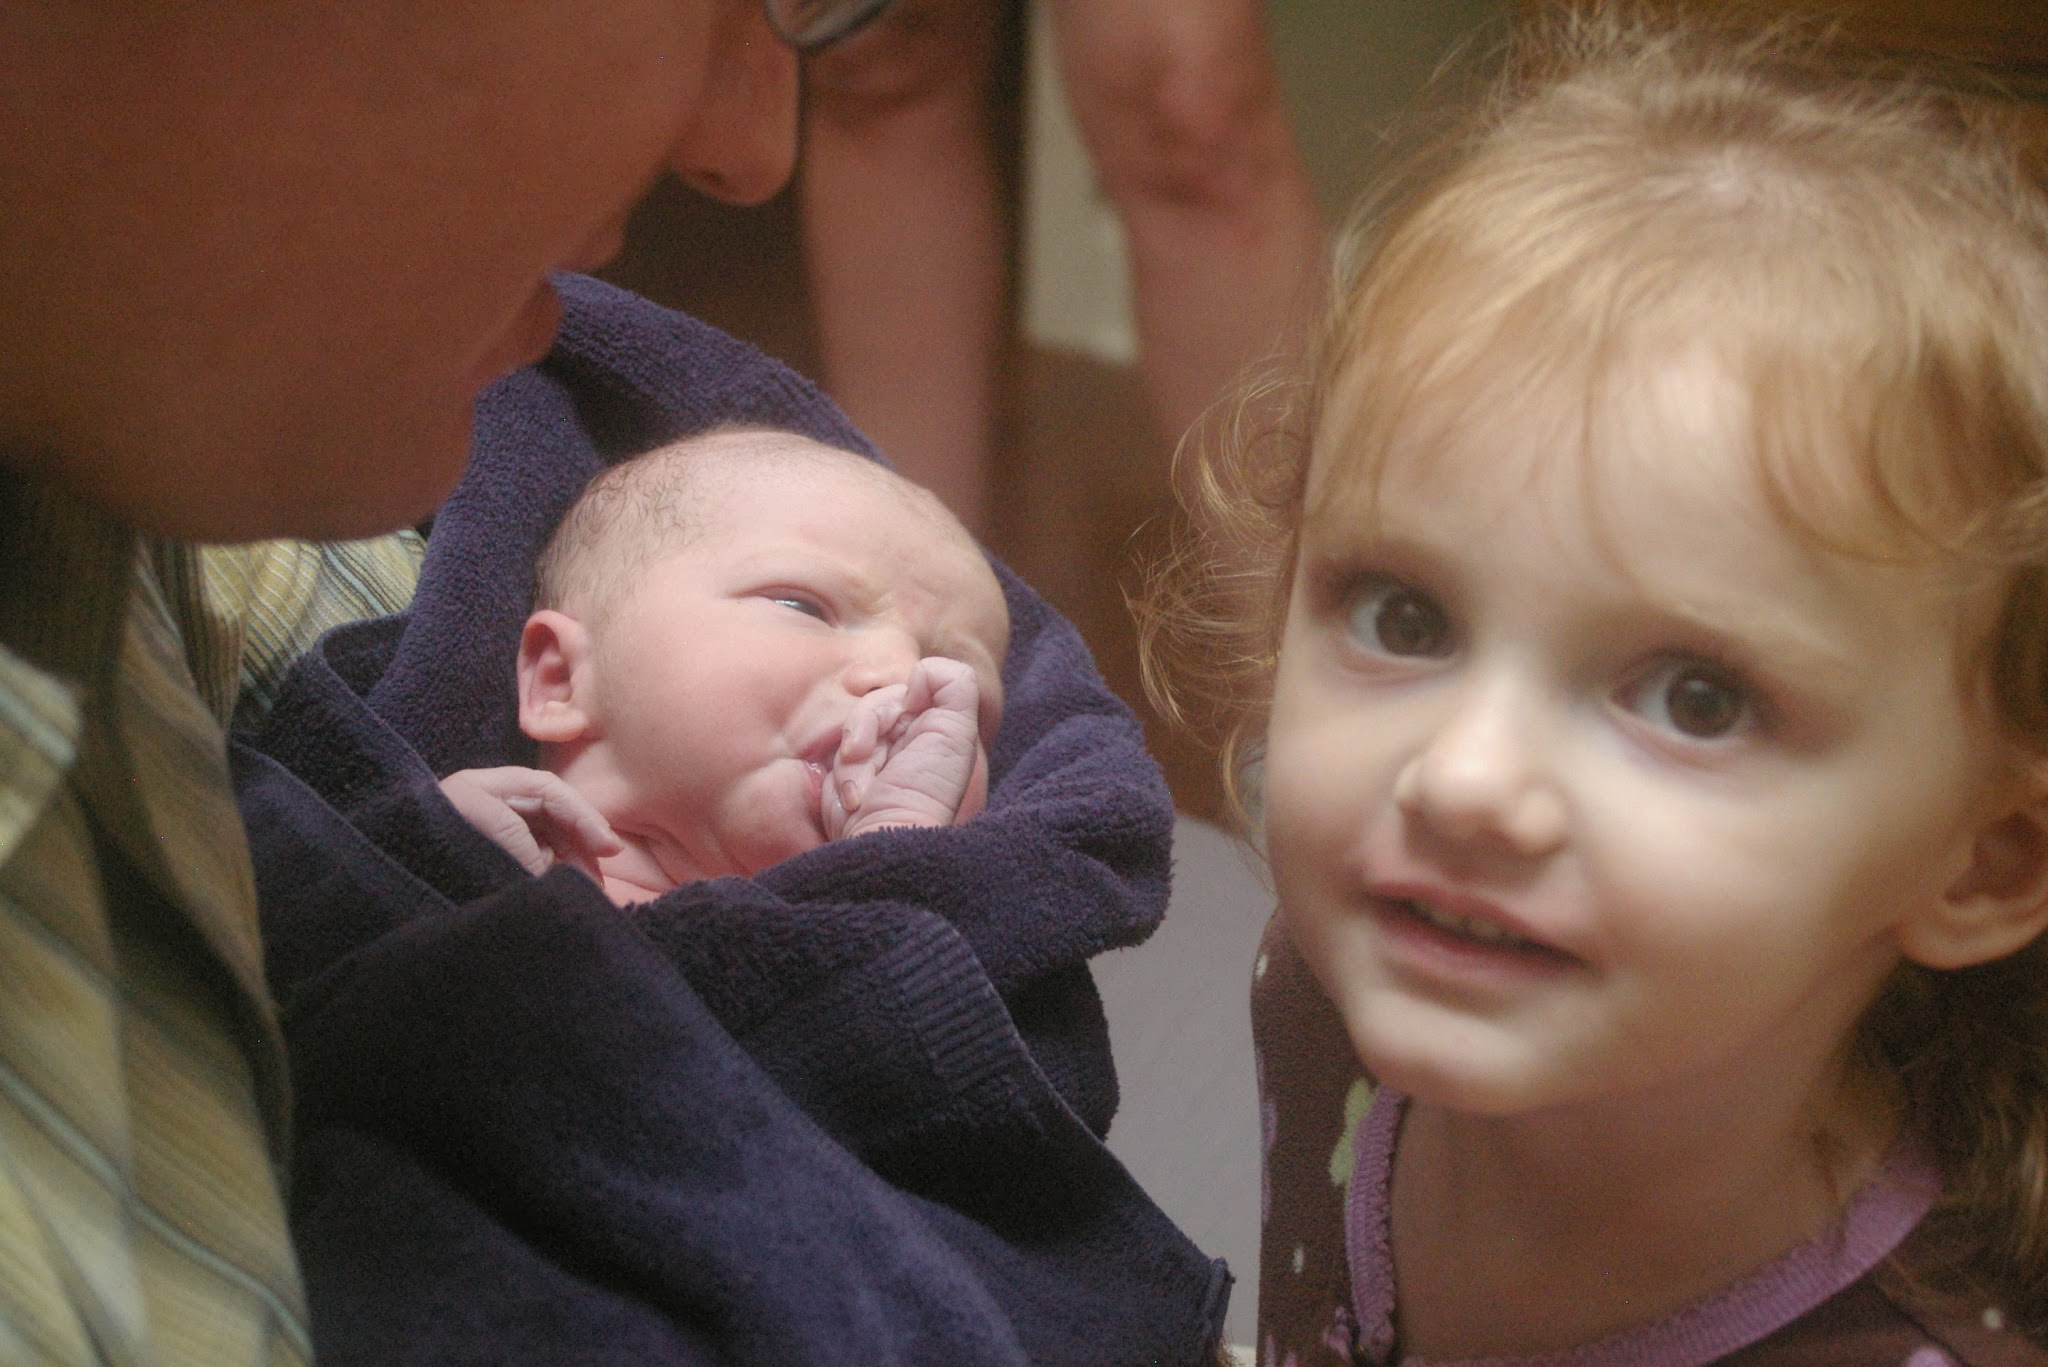 """Siblings at Birth! This is part of why I started teaching  """"siblings at birth""""classes for kids,  to help them get excited for a new baby and know what to expect, in an age appropriate way. A beautiful way to help siblings bond."""